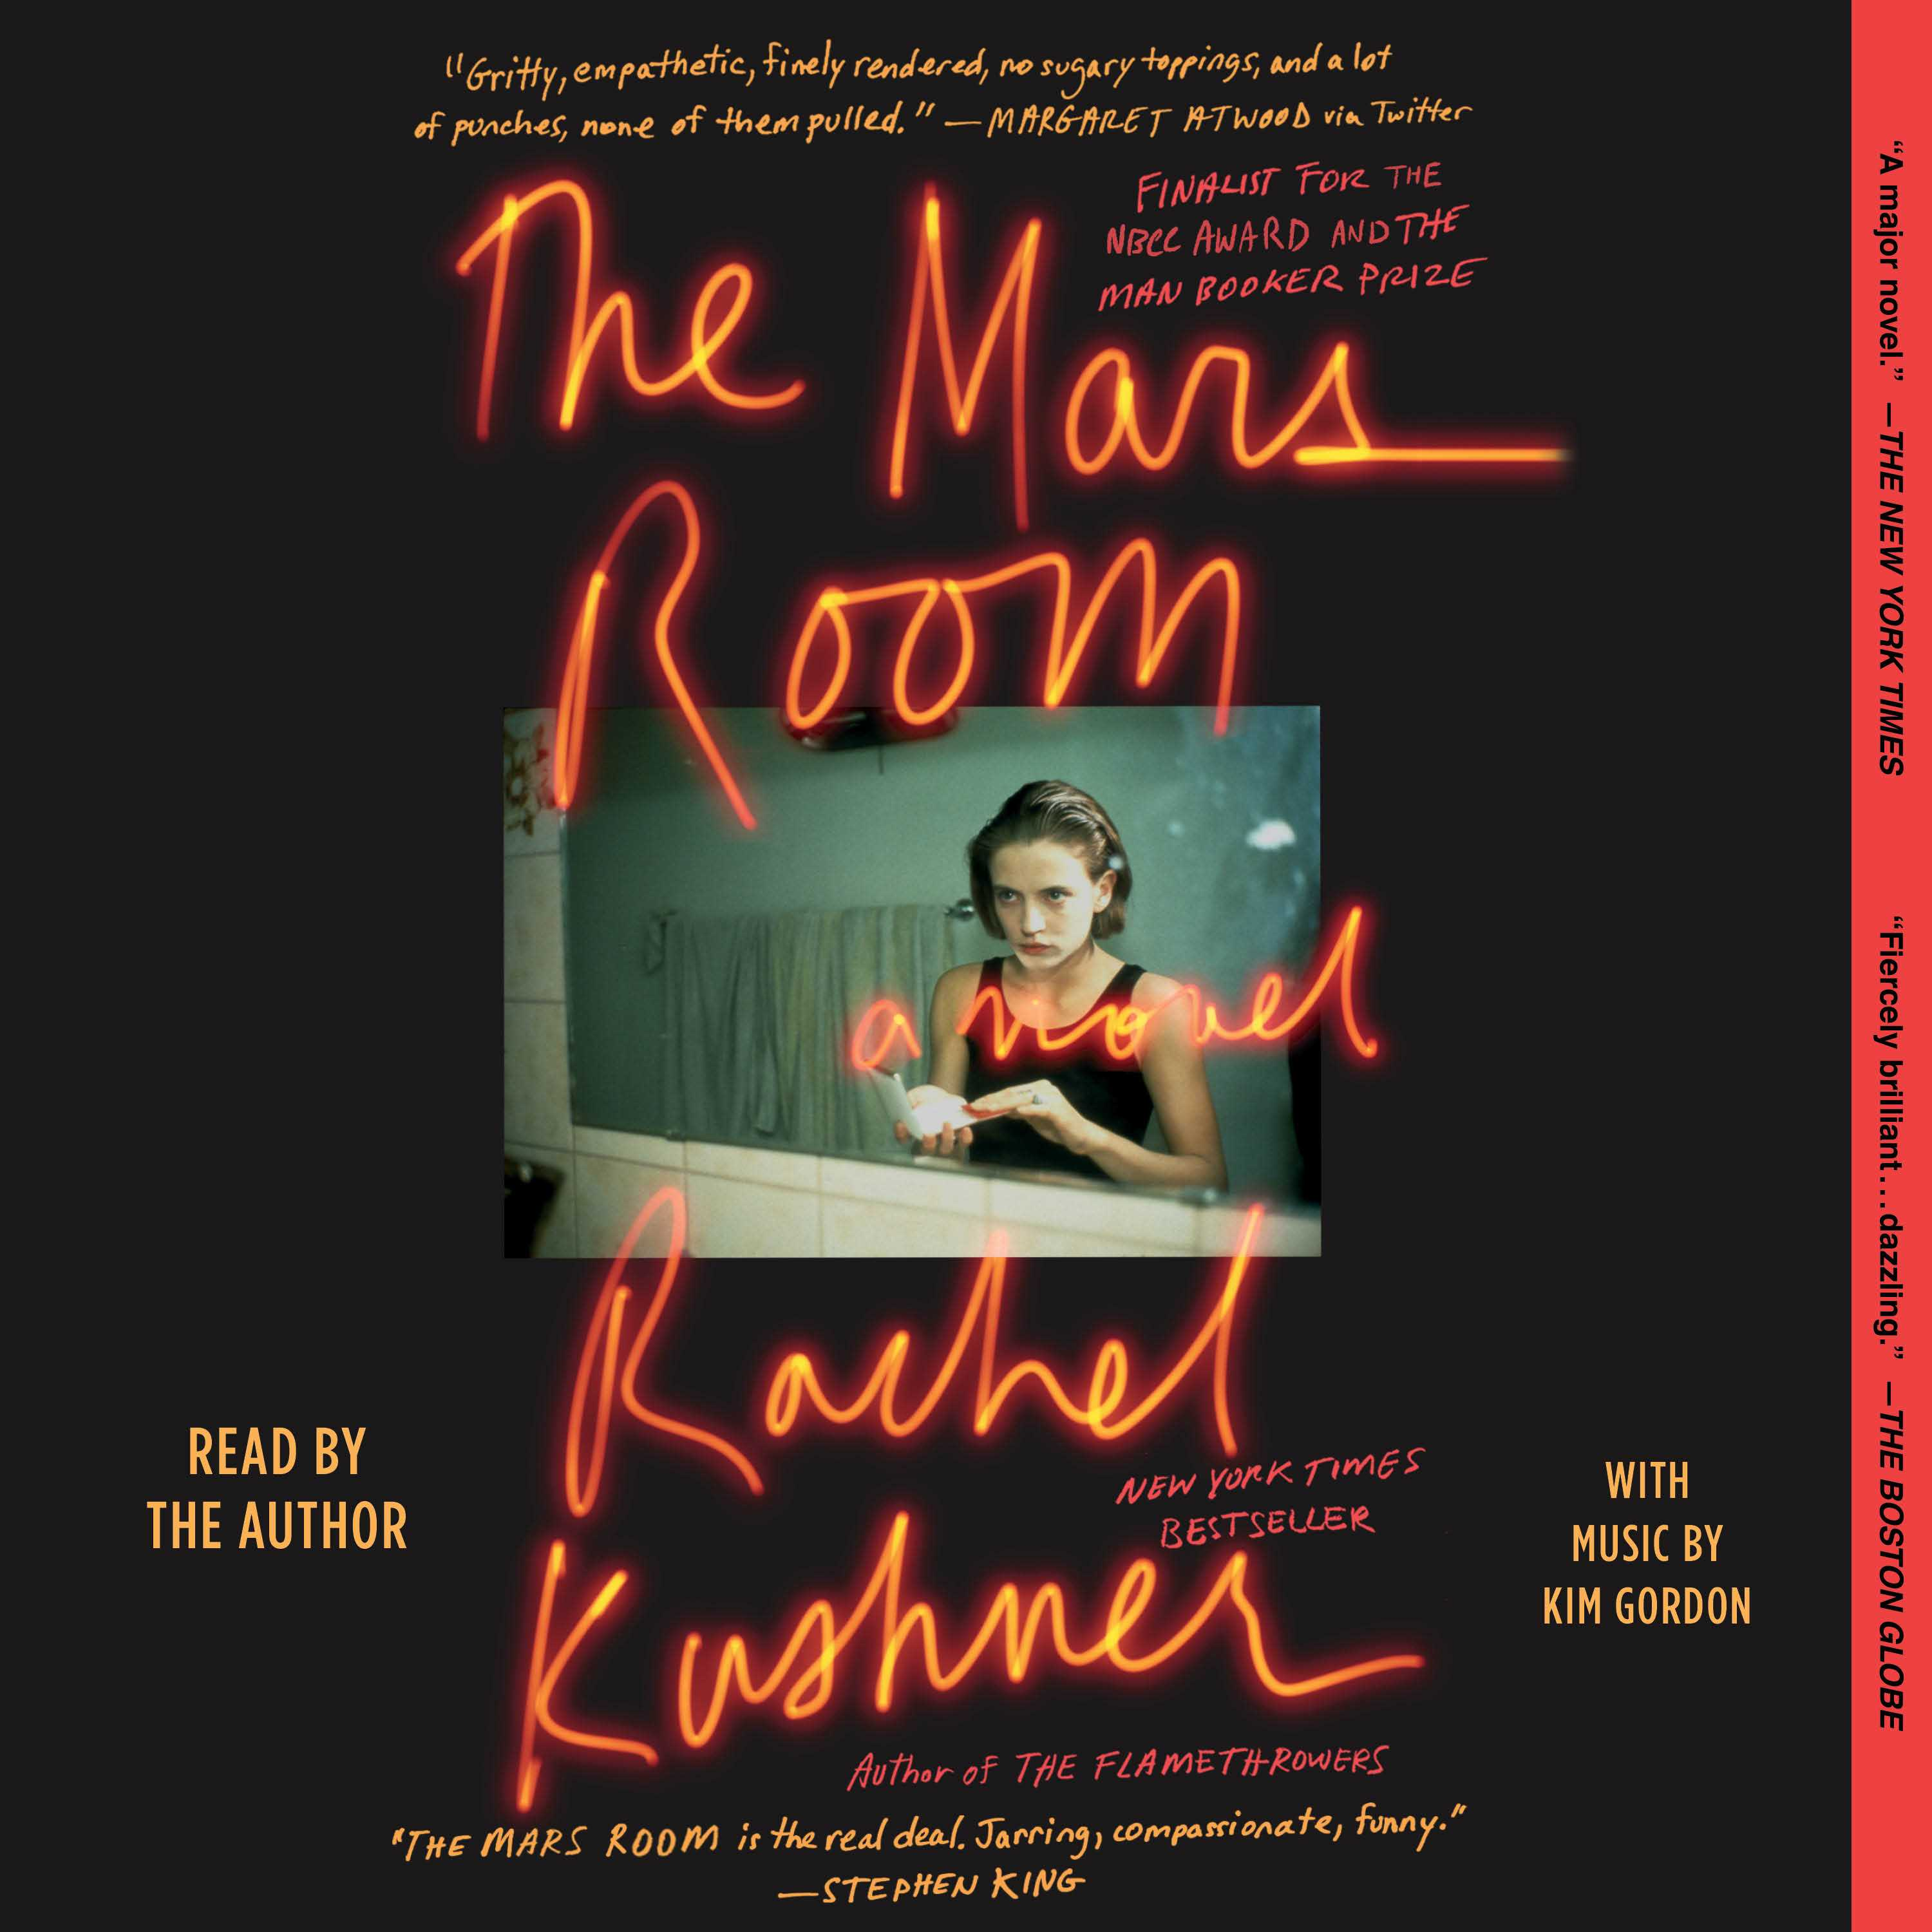 The Mars Room Audiobook by Rachel Kushner | Official Publisher Page ...